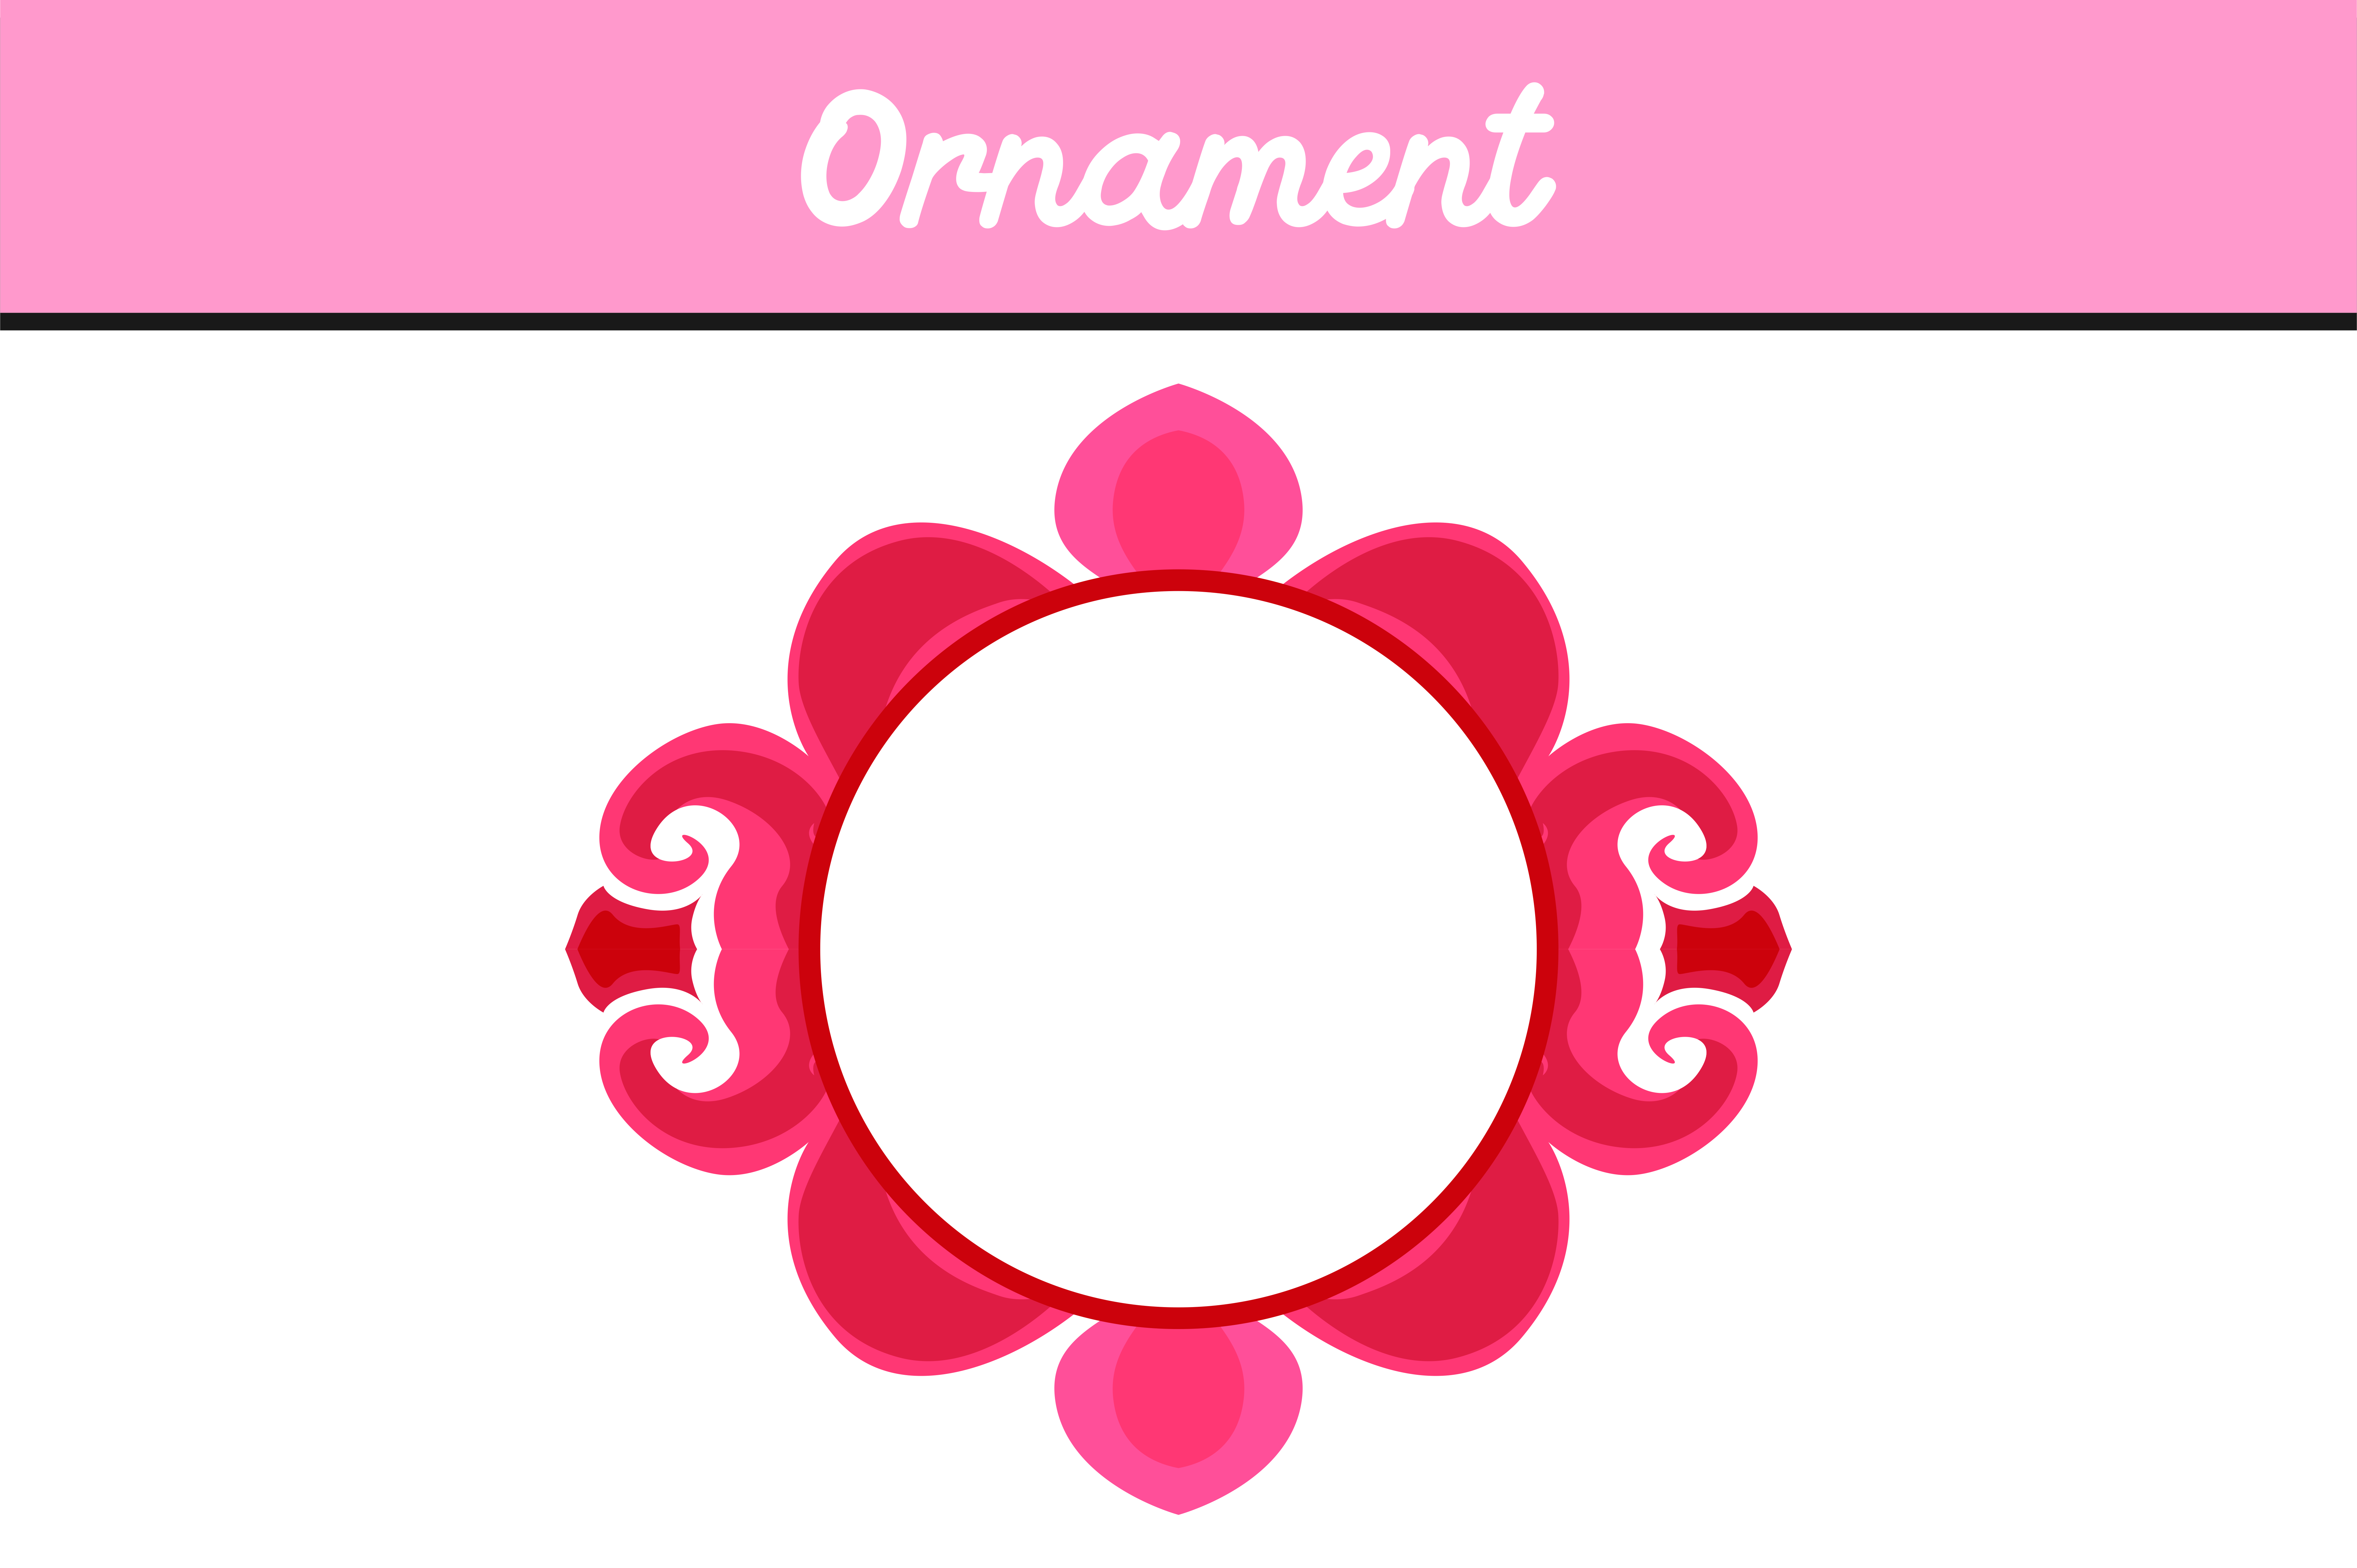 Download Free Pink Circle Frame Ornament Vector Graphic By Arief Sapta Adjie for Cricut Explore, Silhouette and other cutting machines.